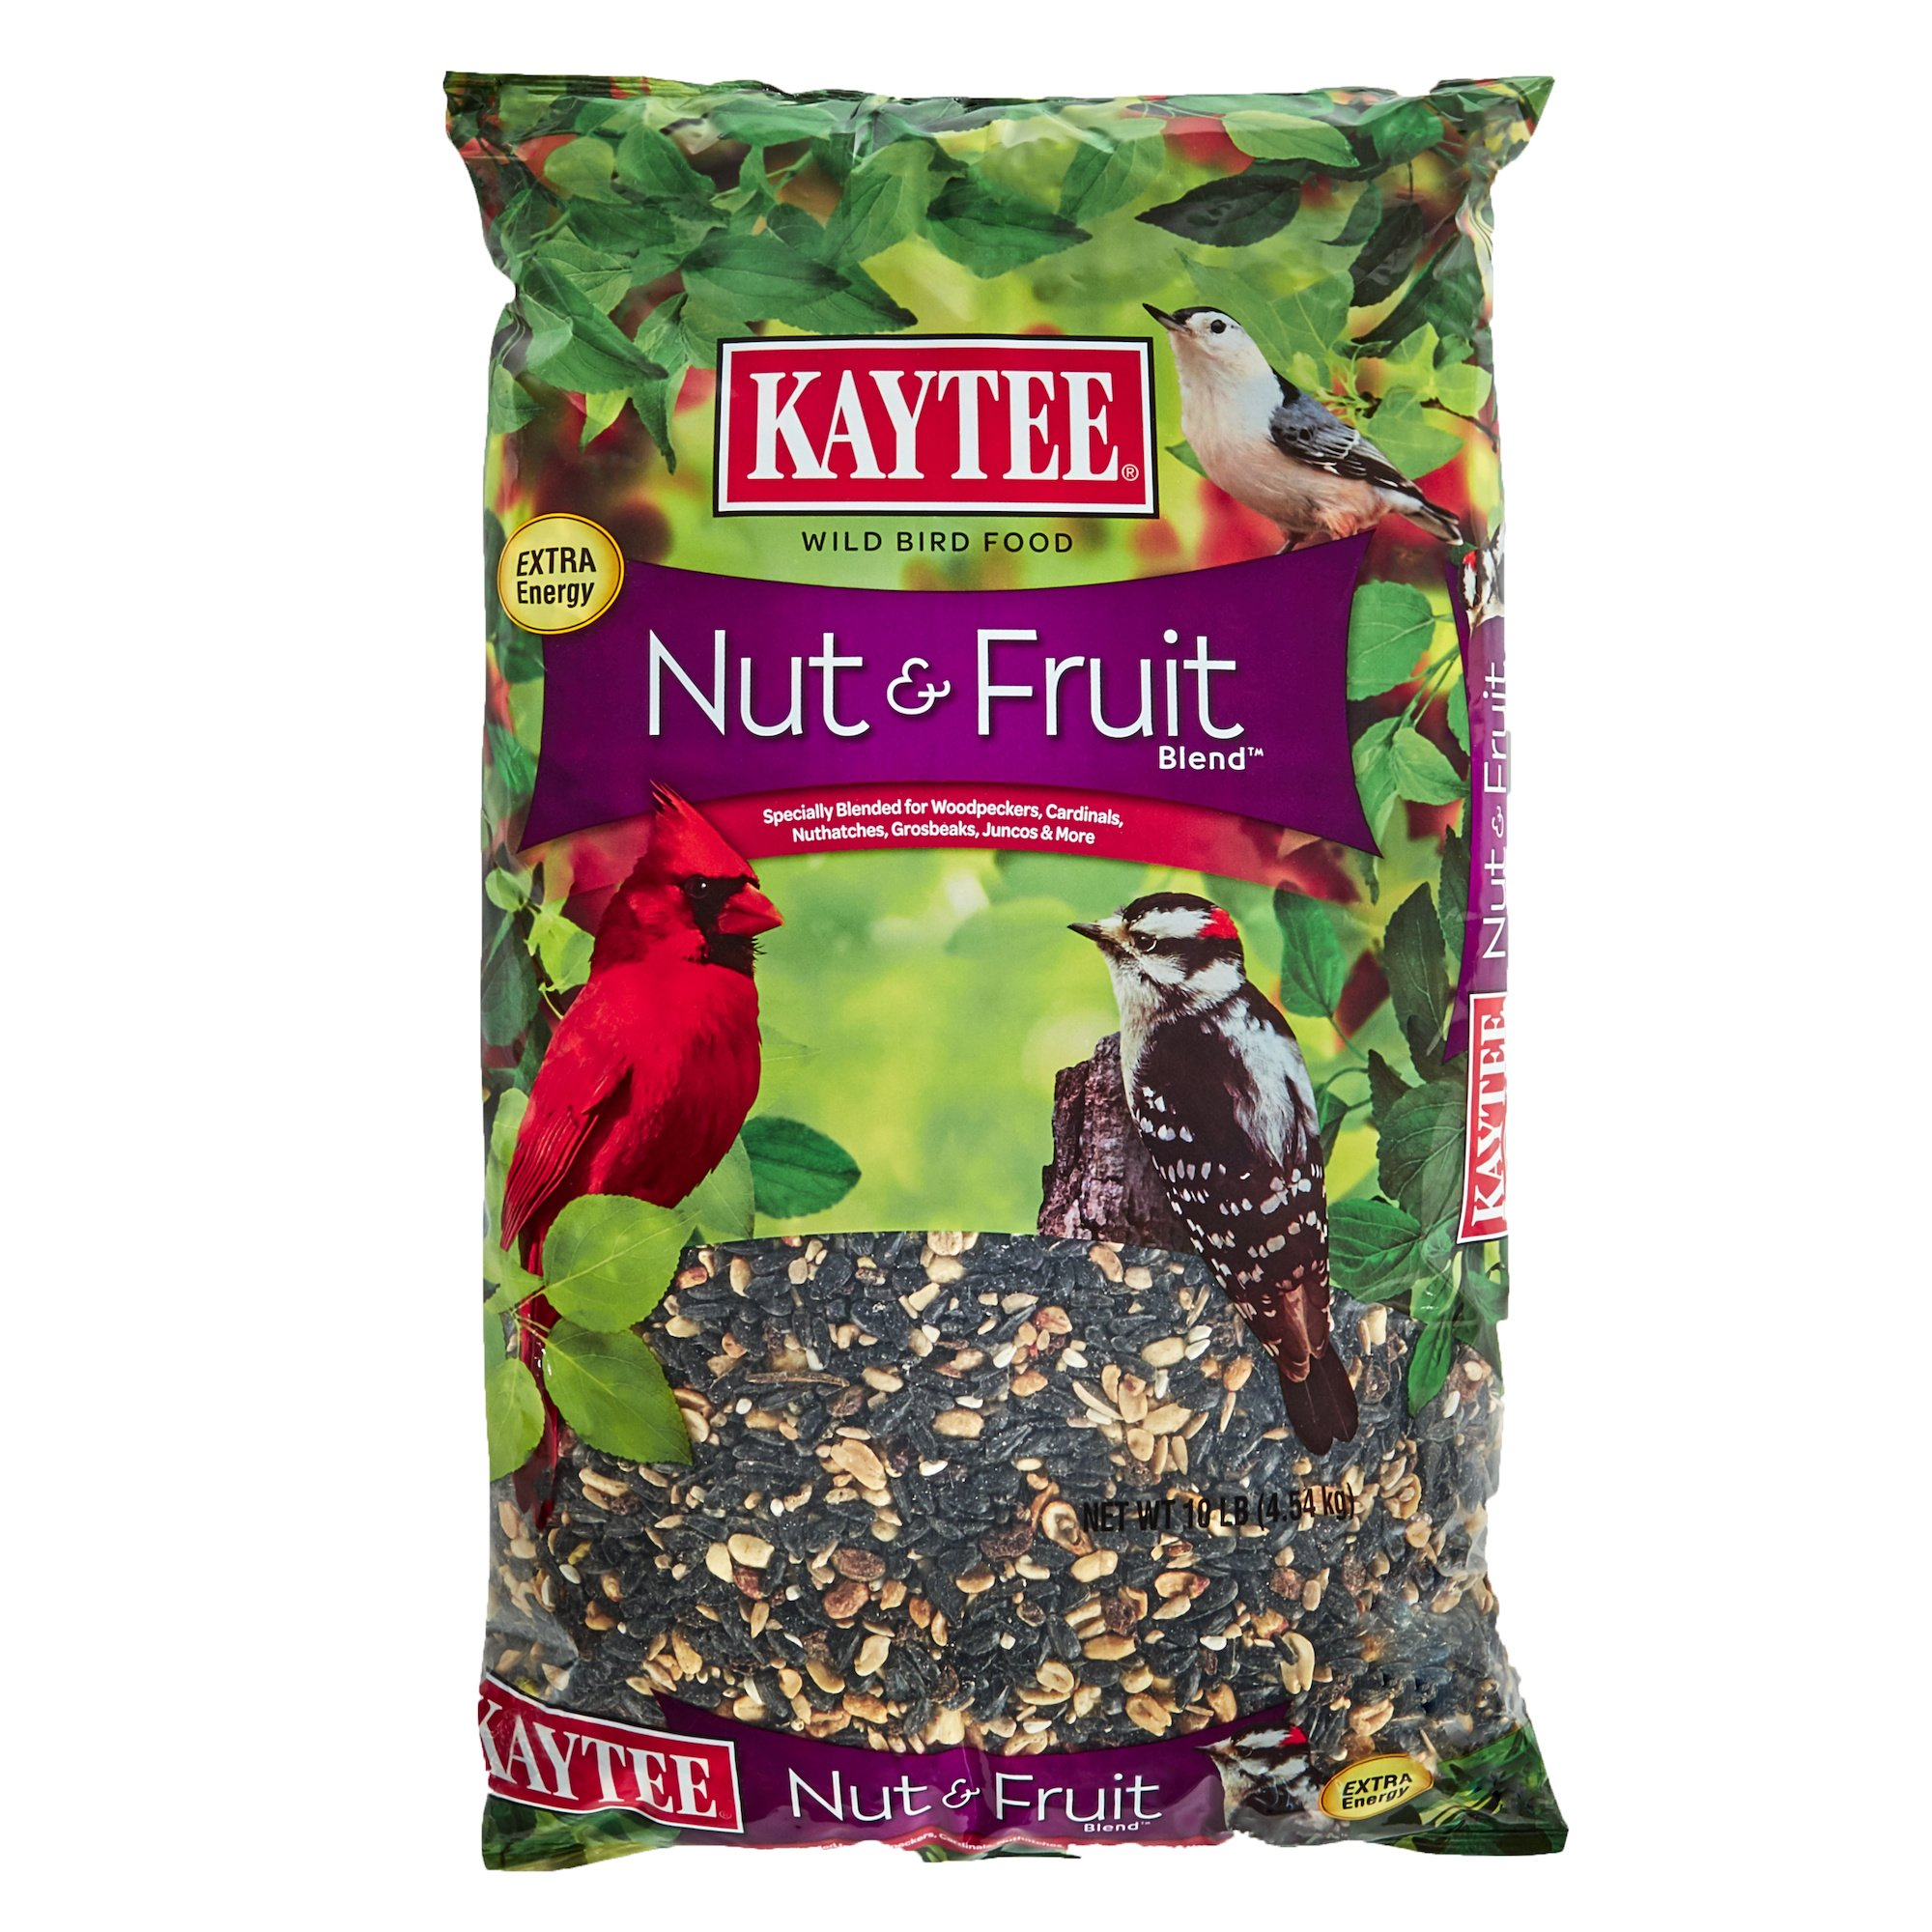 Kaytee Nut And Fruit Blend 10 Pounds by Kaytee